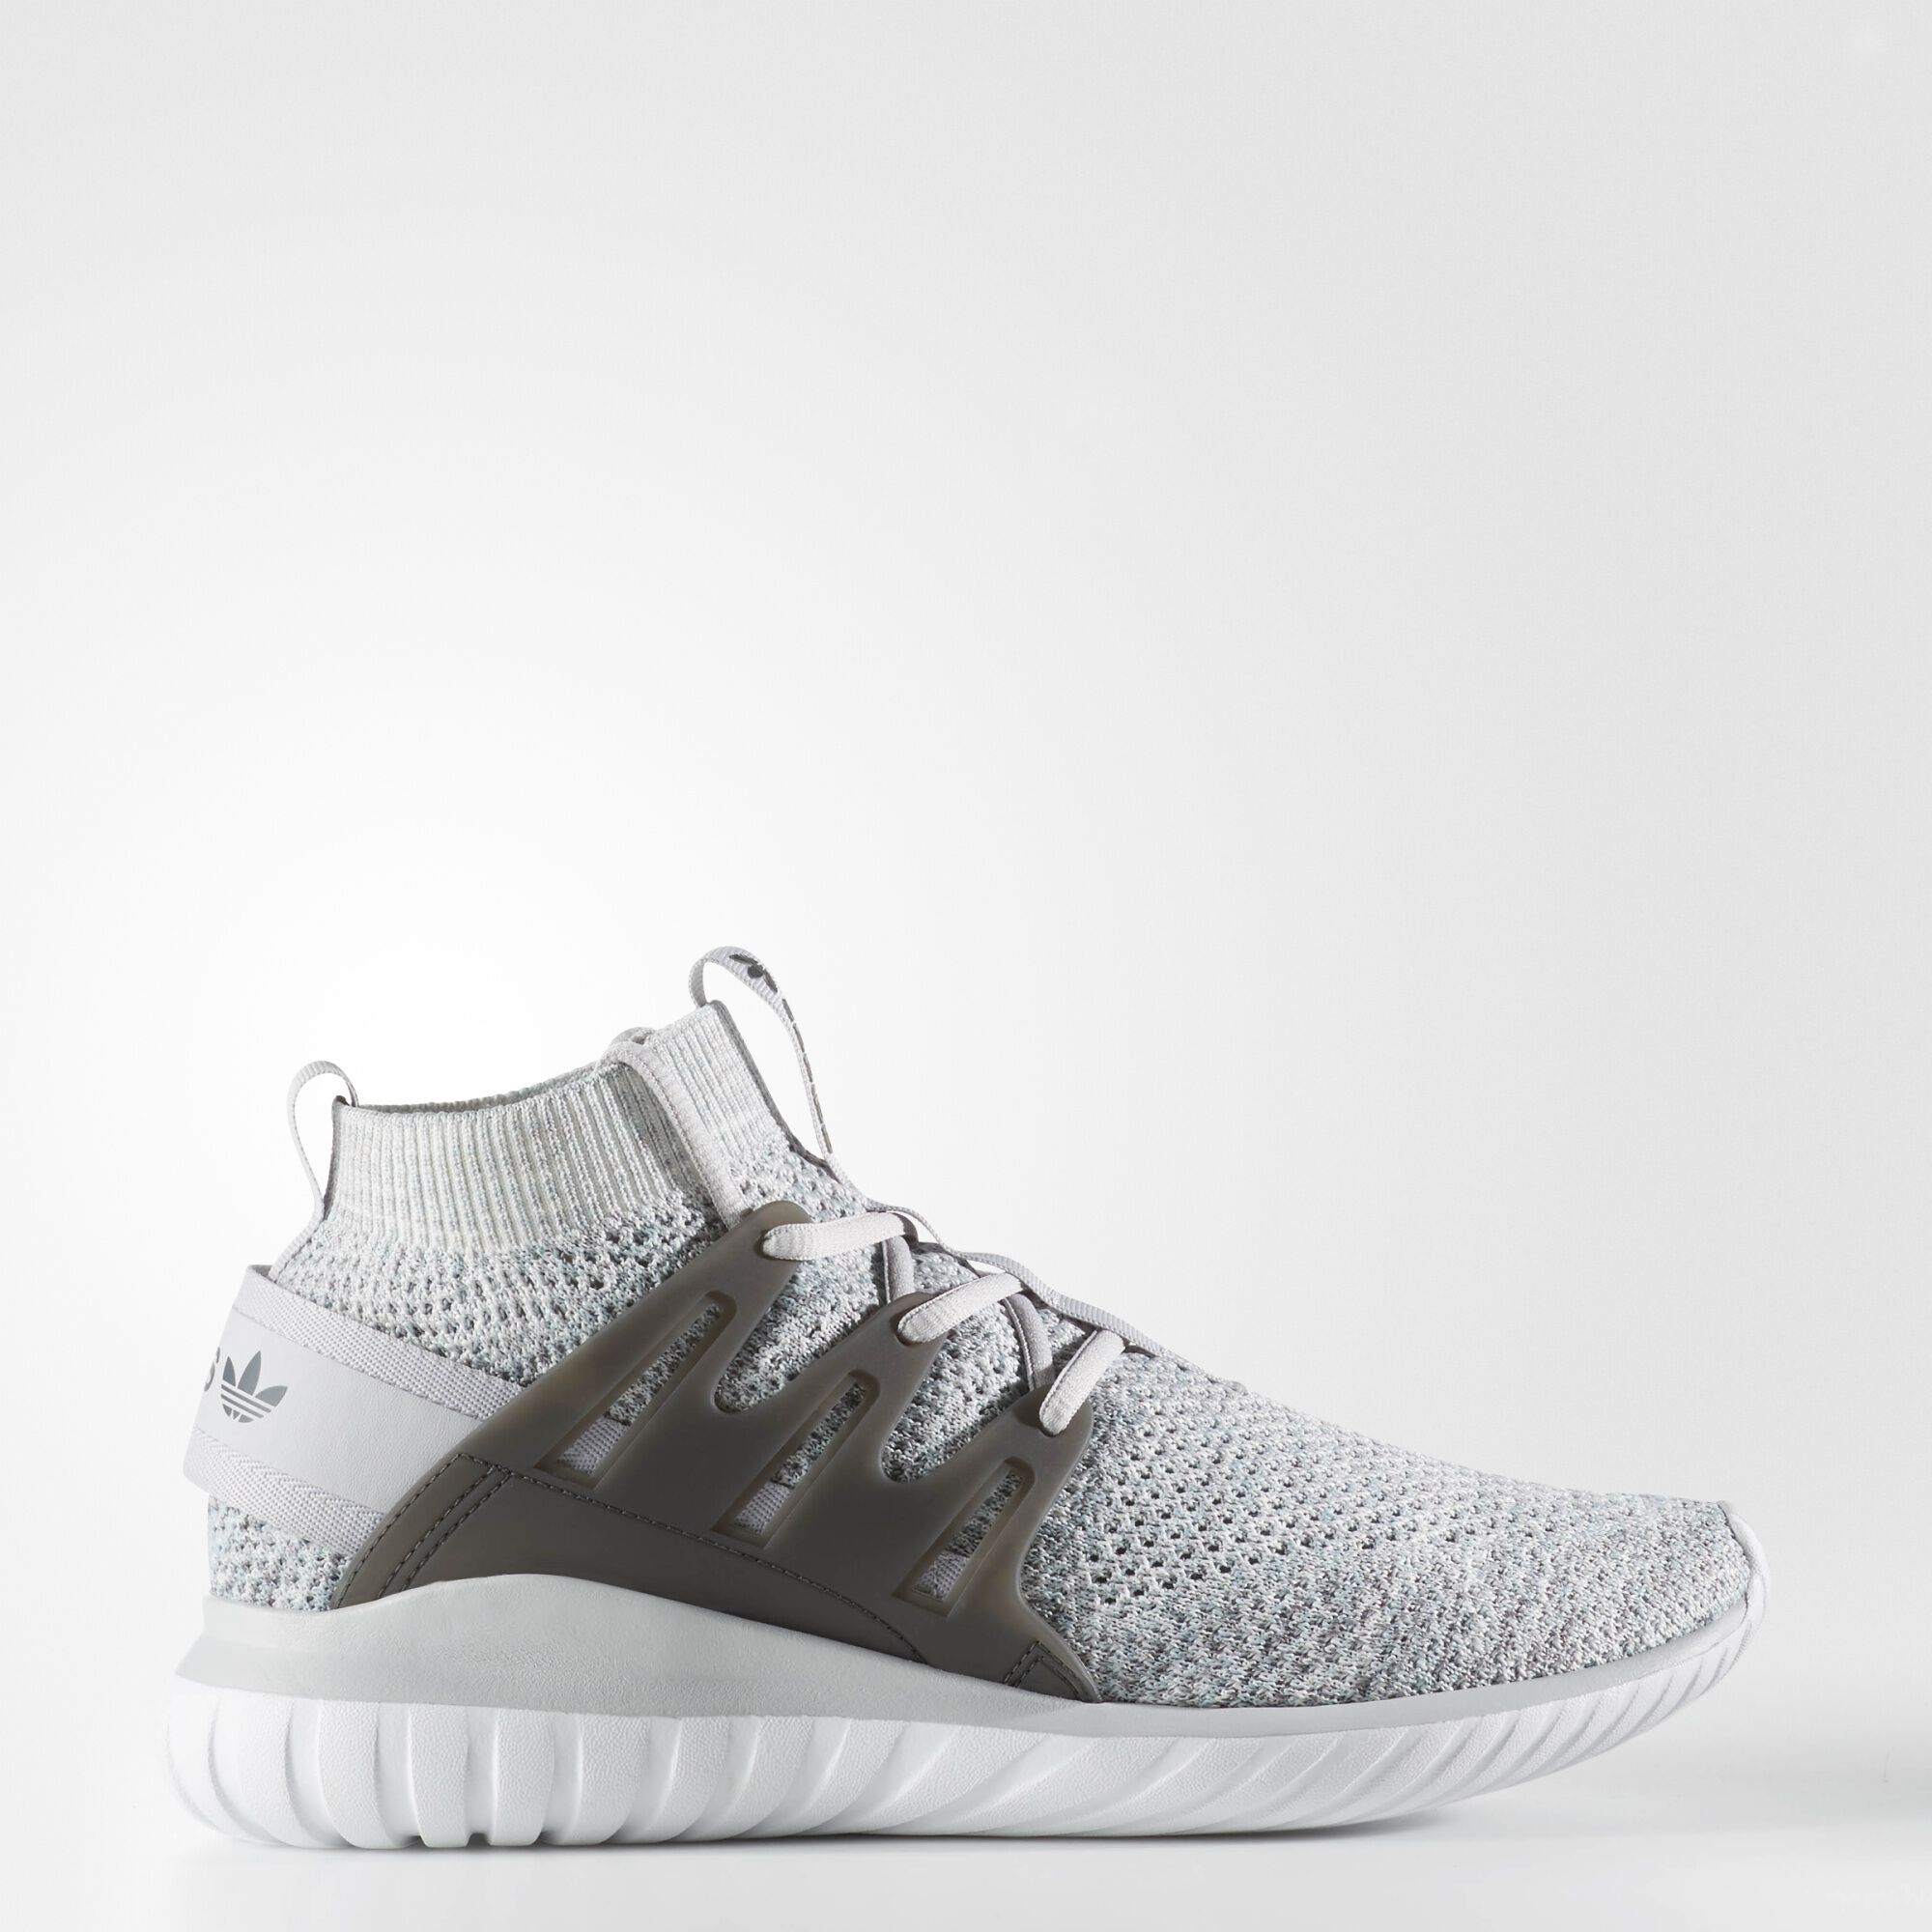 Adidas Men 's Tubular Radial Shoes Blue adidas Canada